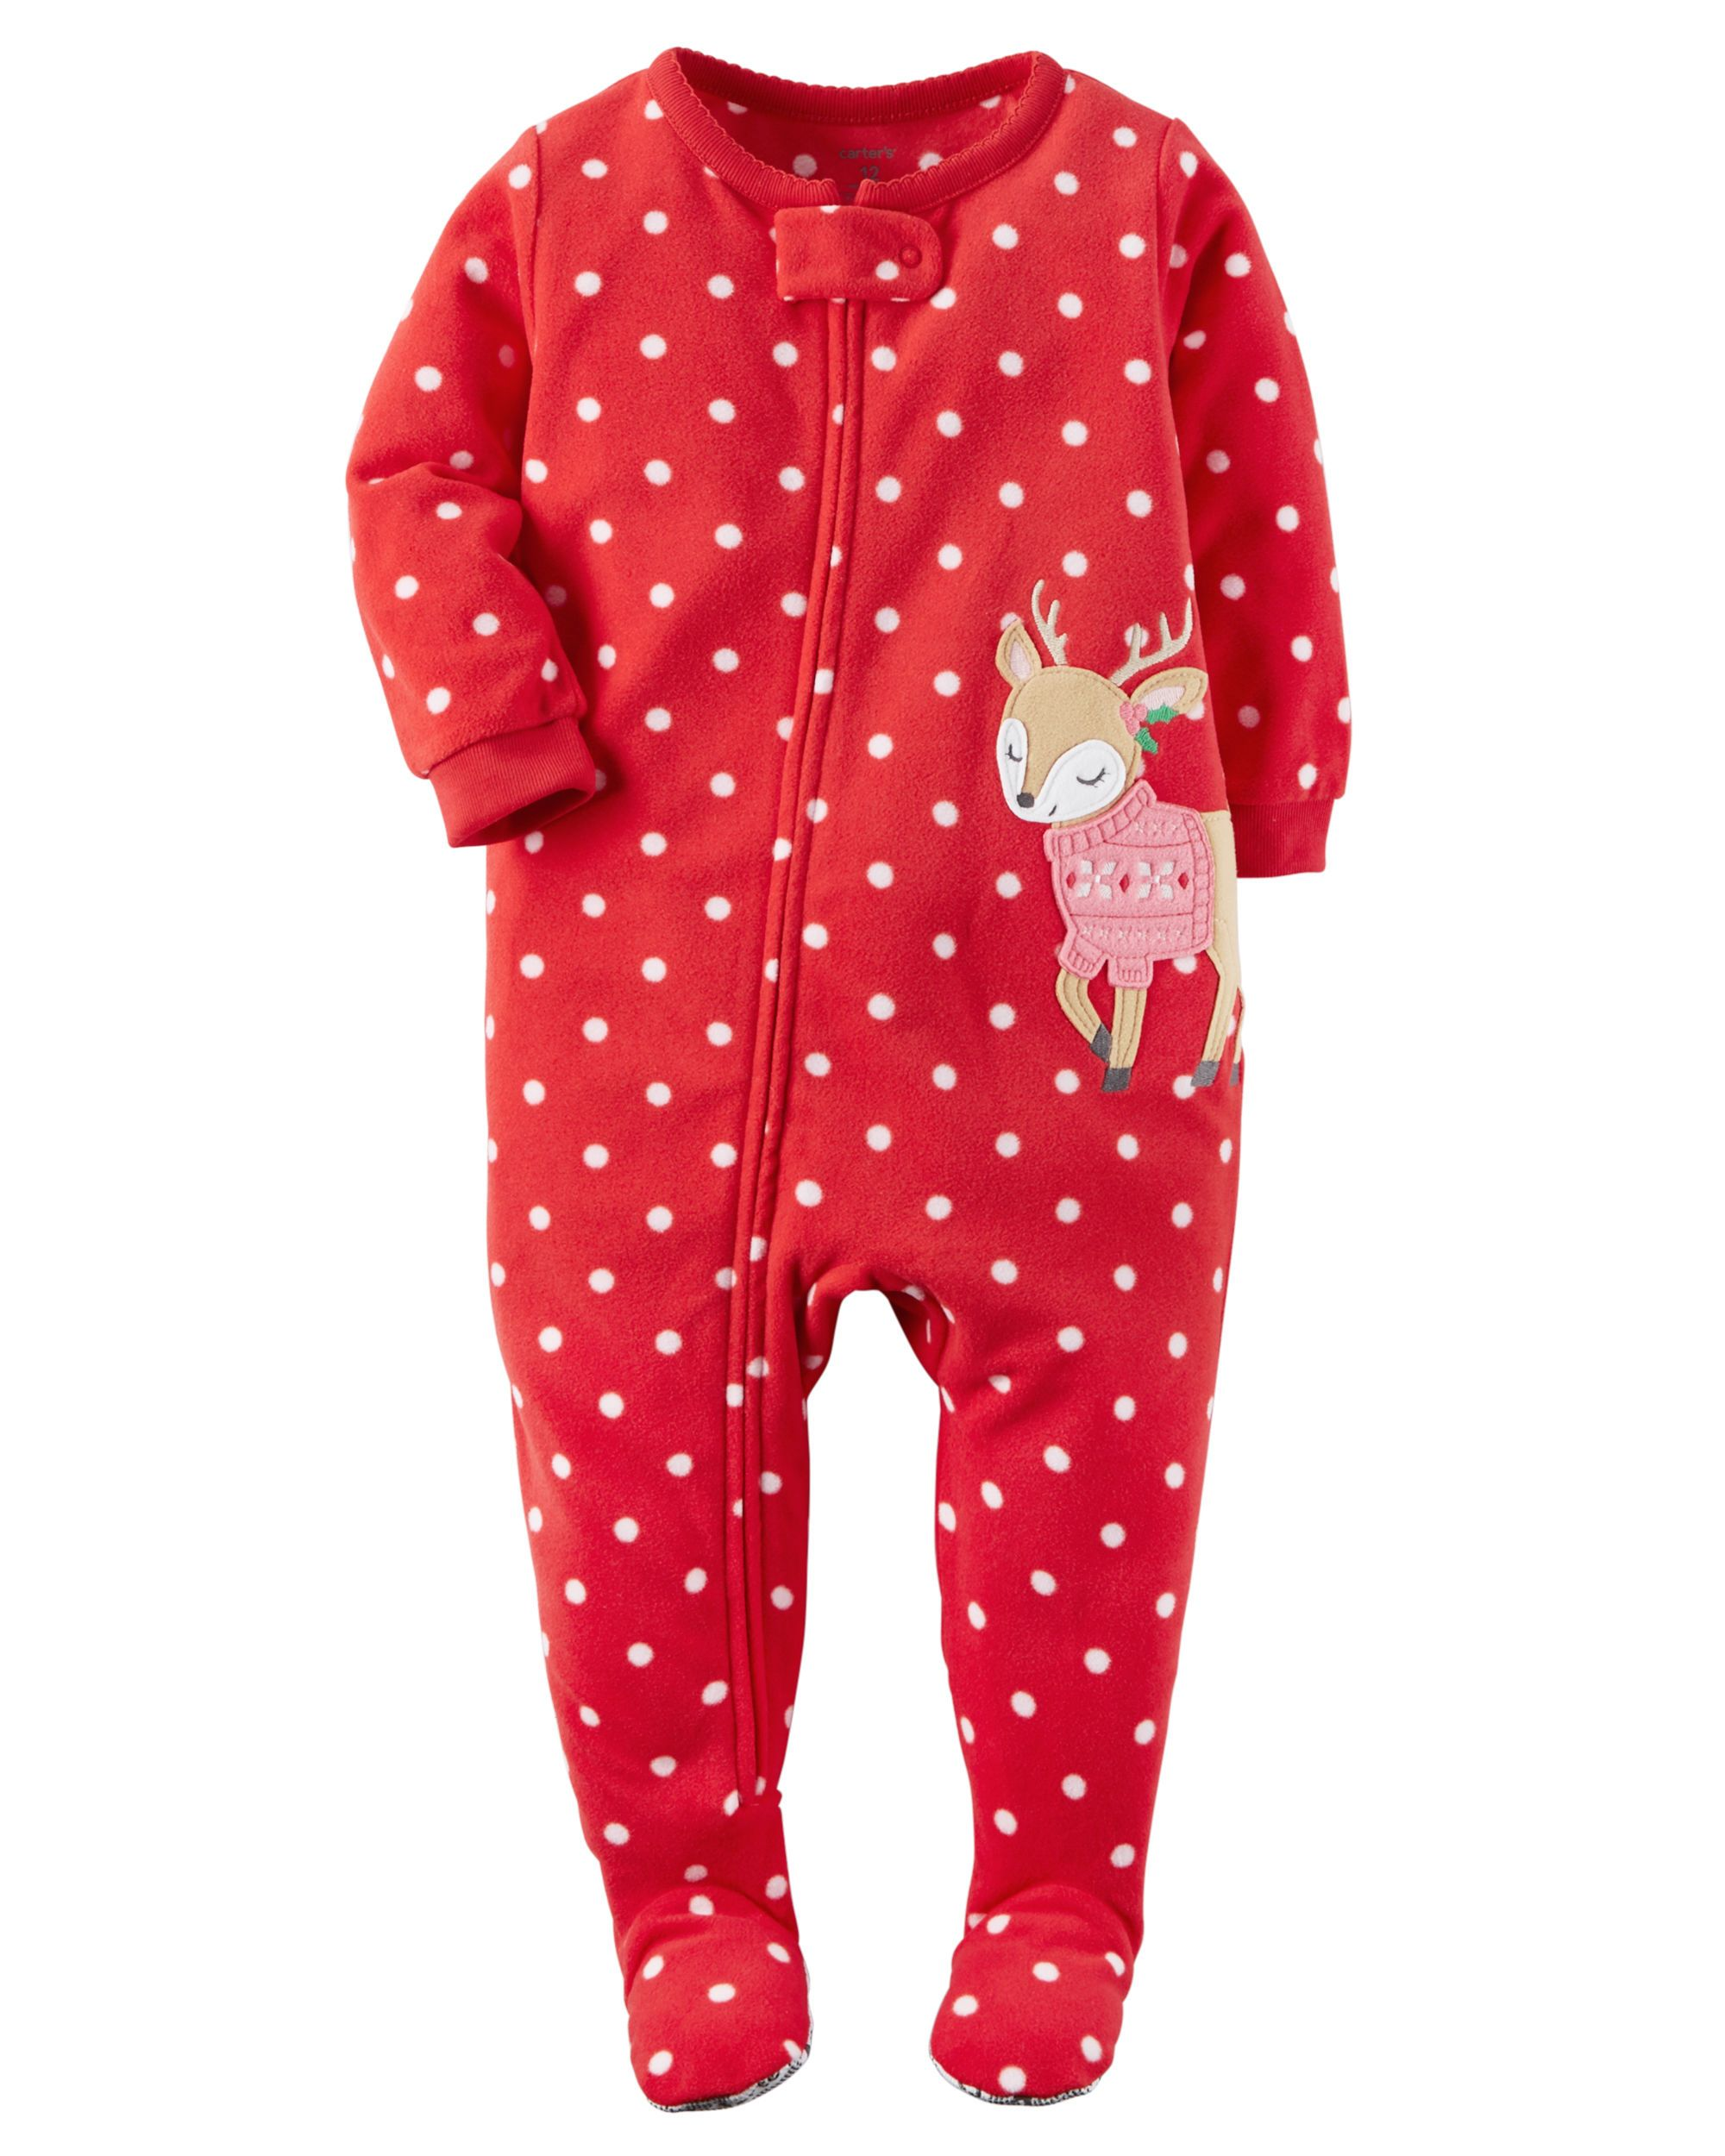 41b37aeaf1 Crafted in snuggly fleece with allover polka dots and a reindeer appliqué